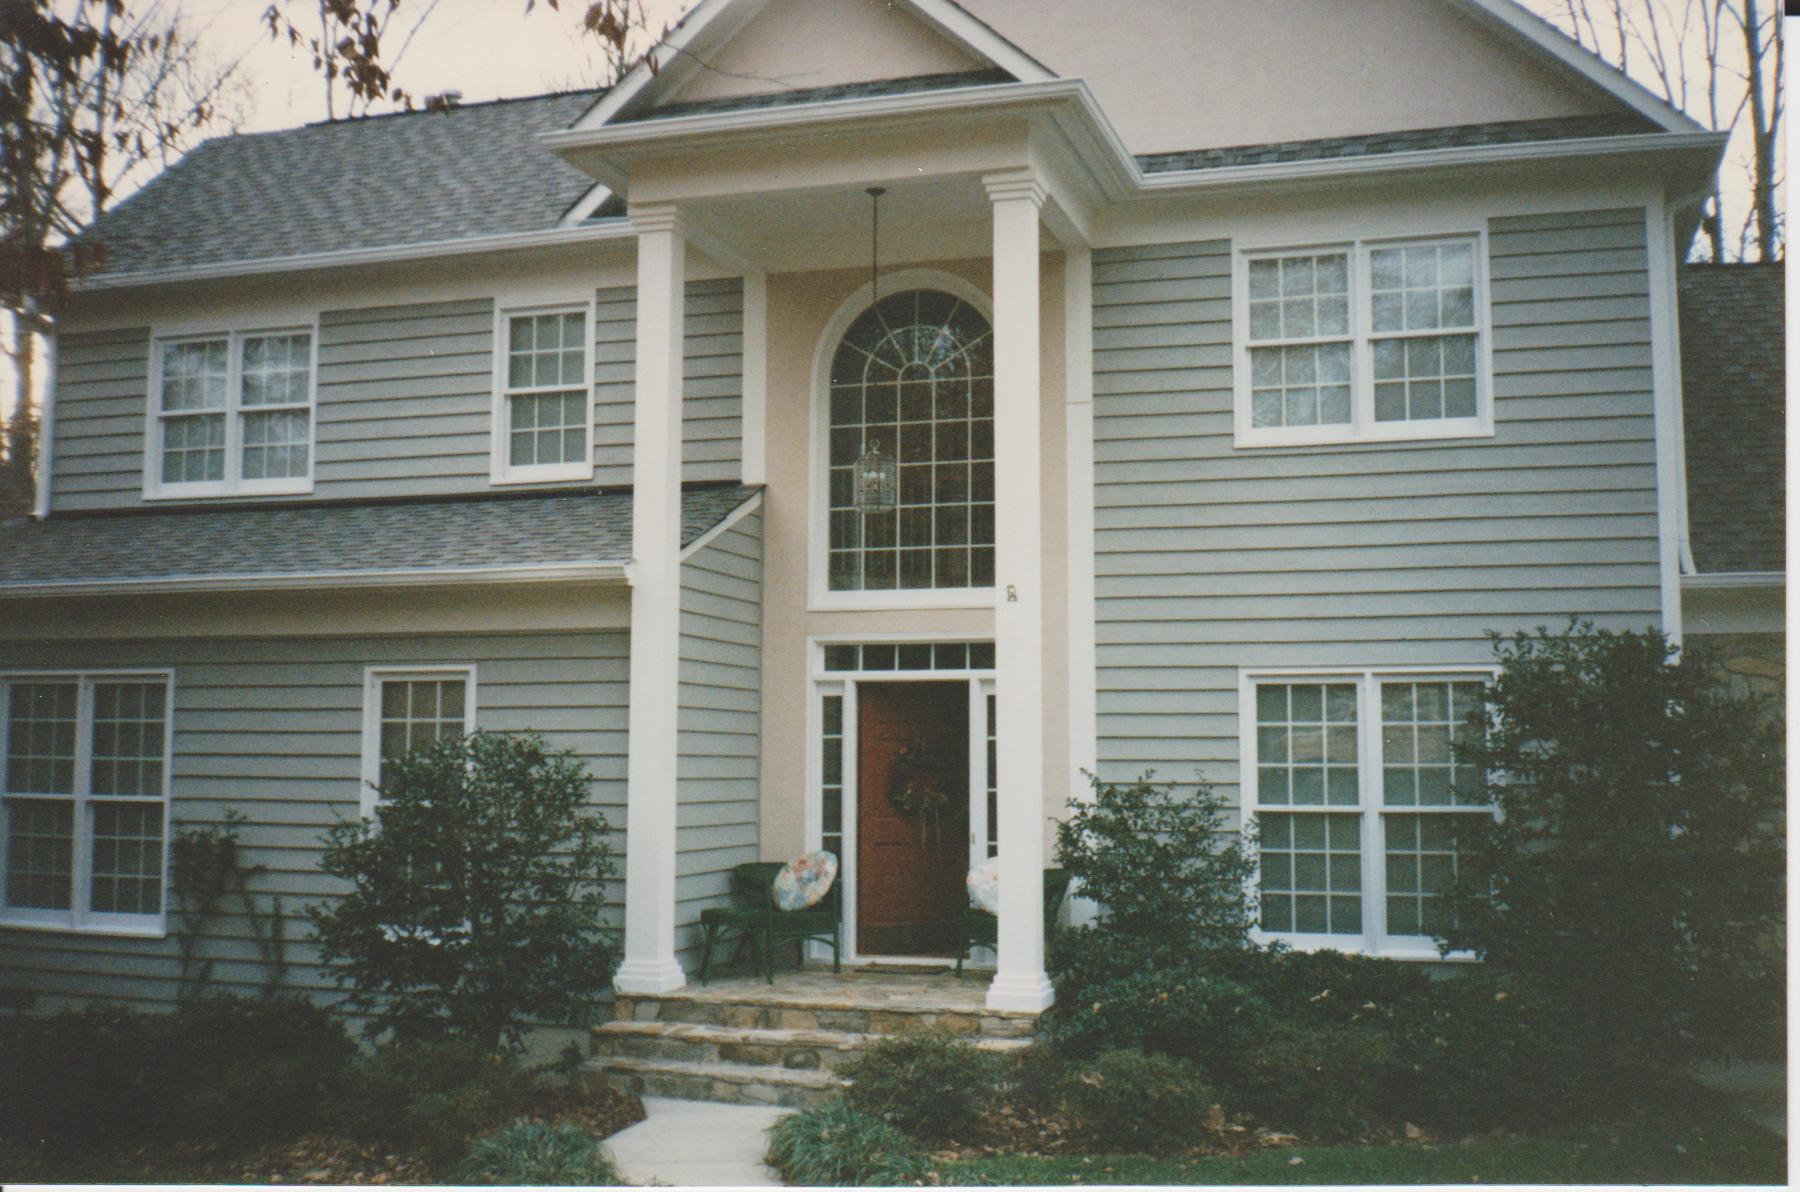 Exterior silve 001 professional painting contractor raleigh nc paint company painters - Exterior painting raleigh nc concept ...